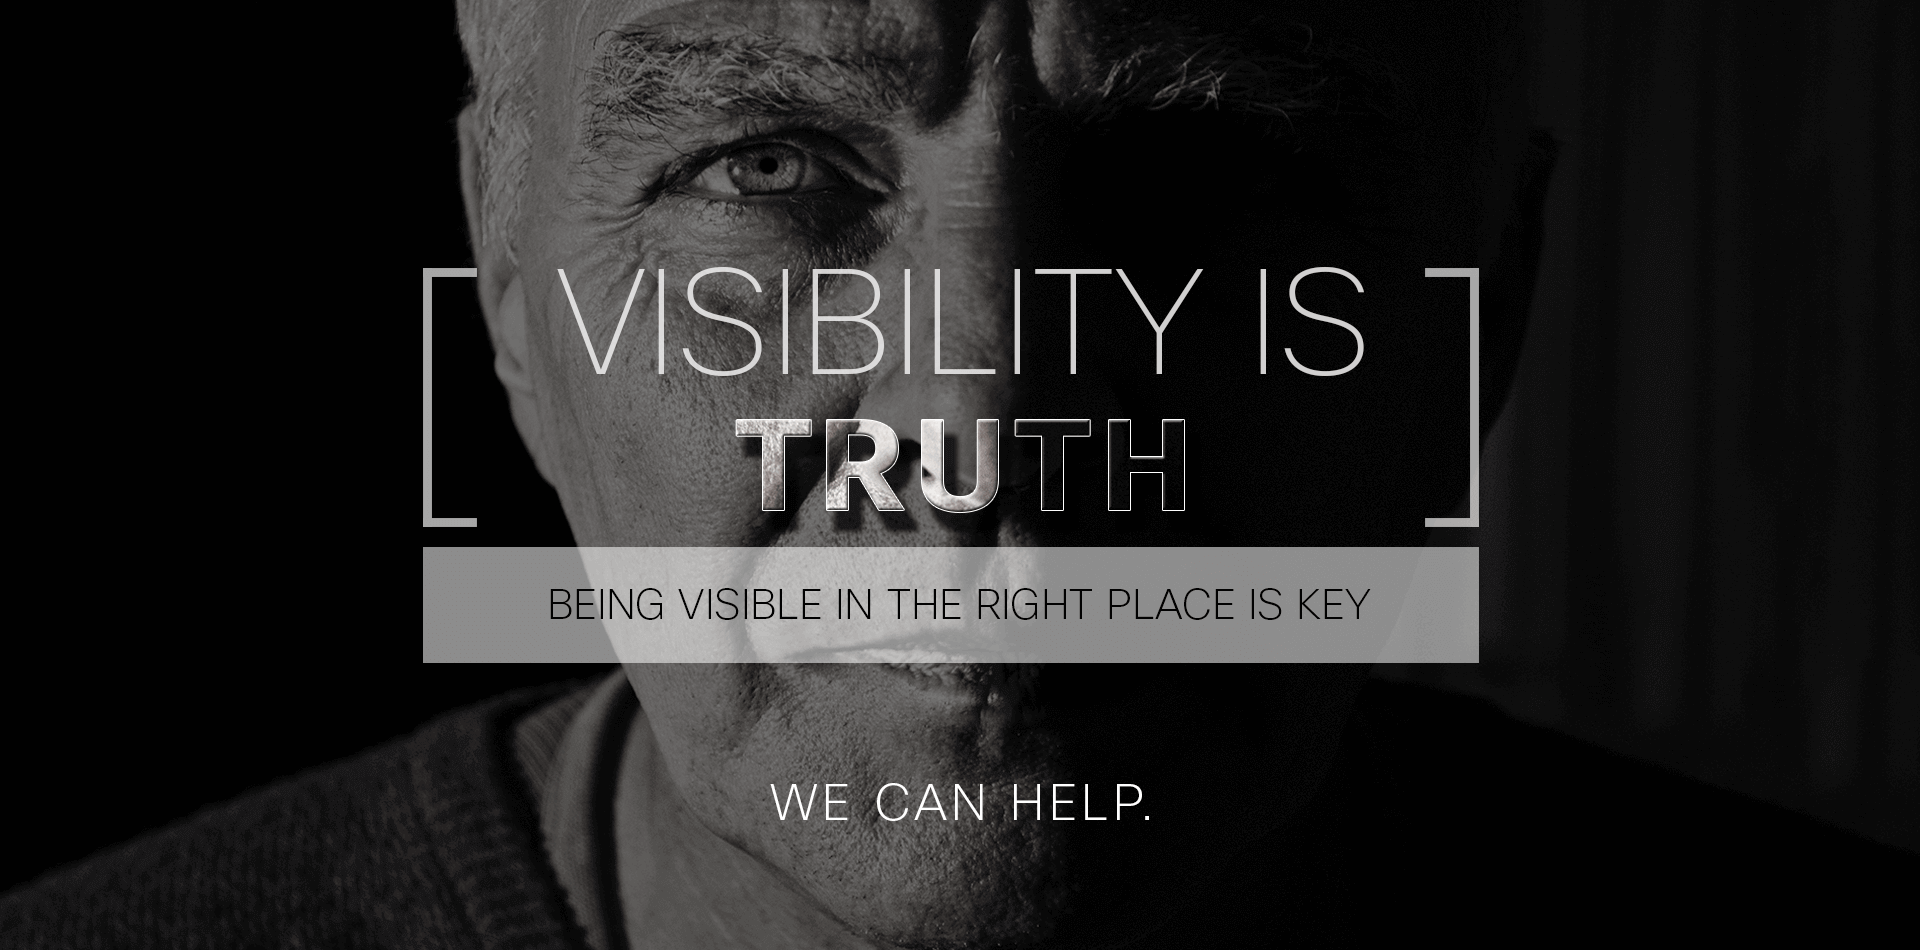 Visibility is truth.